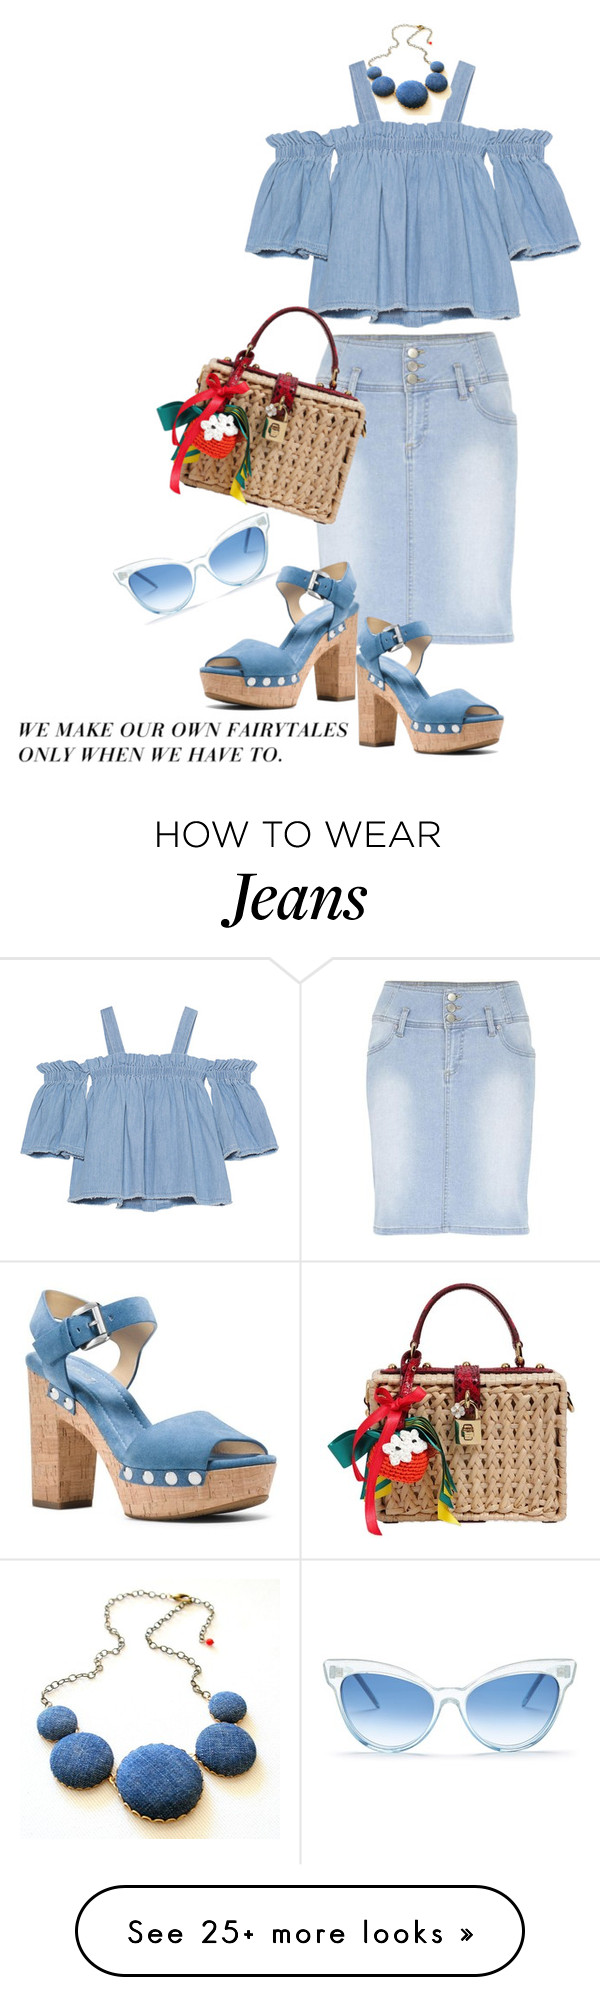 """Heading into the weekend"" by juliehooper on Polyvore featuring SJYP, B.Young, Dolce&Gabbana, MICHAEL Michael Kors and Wildfox"